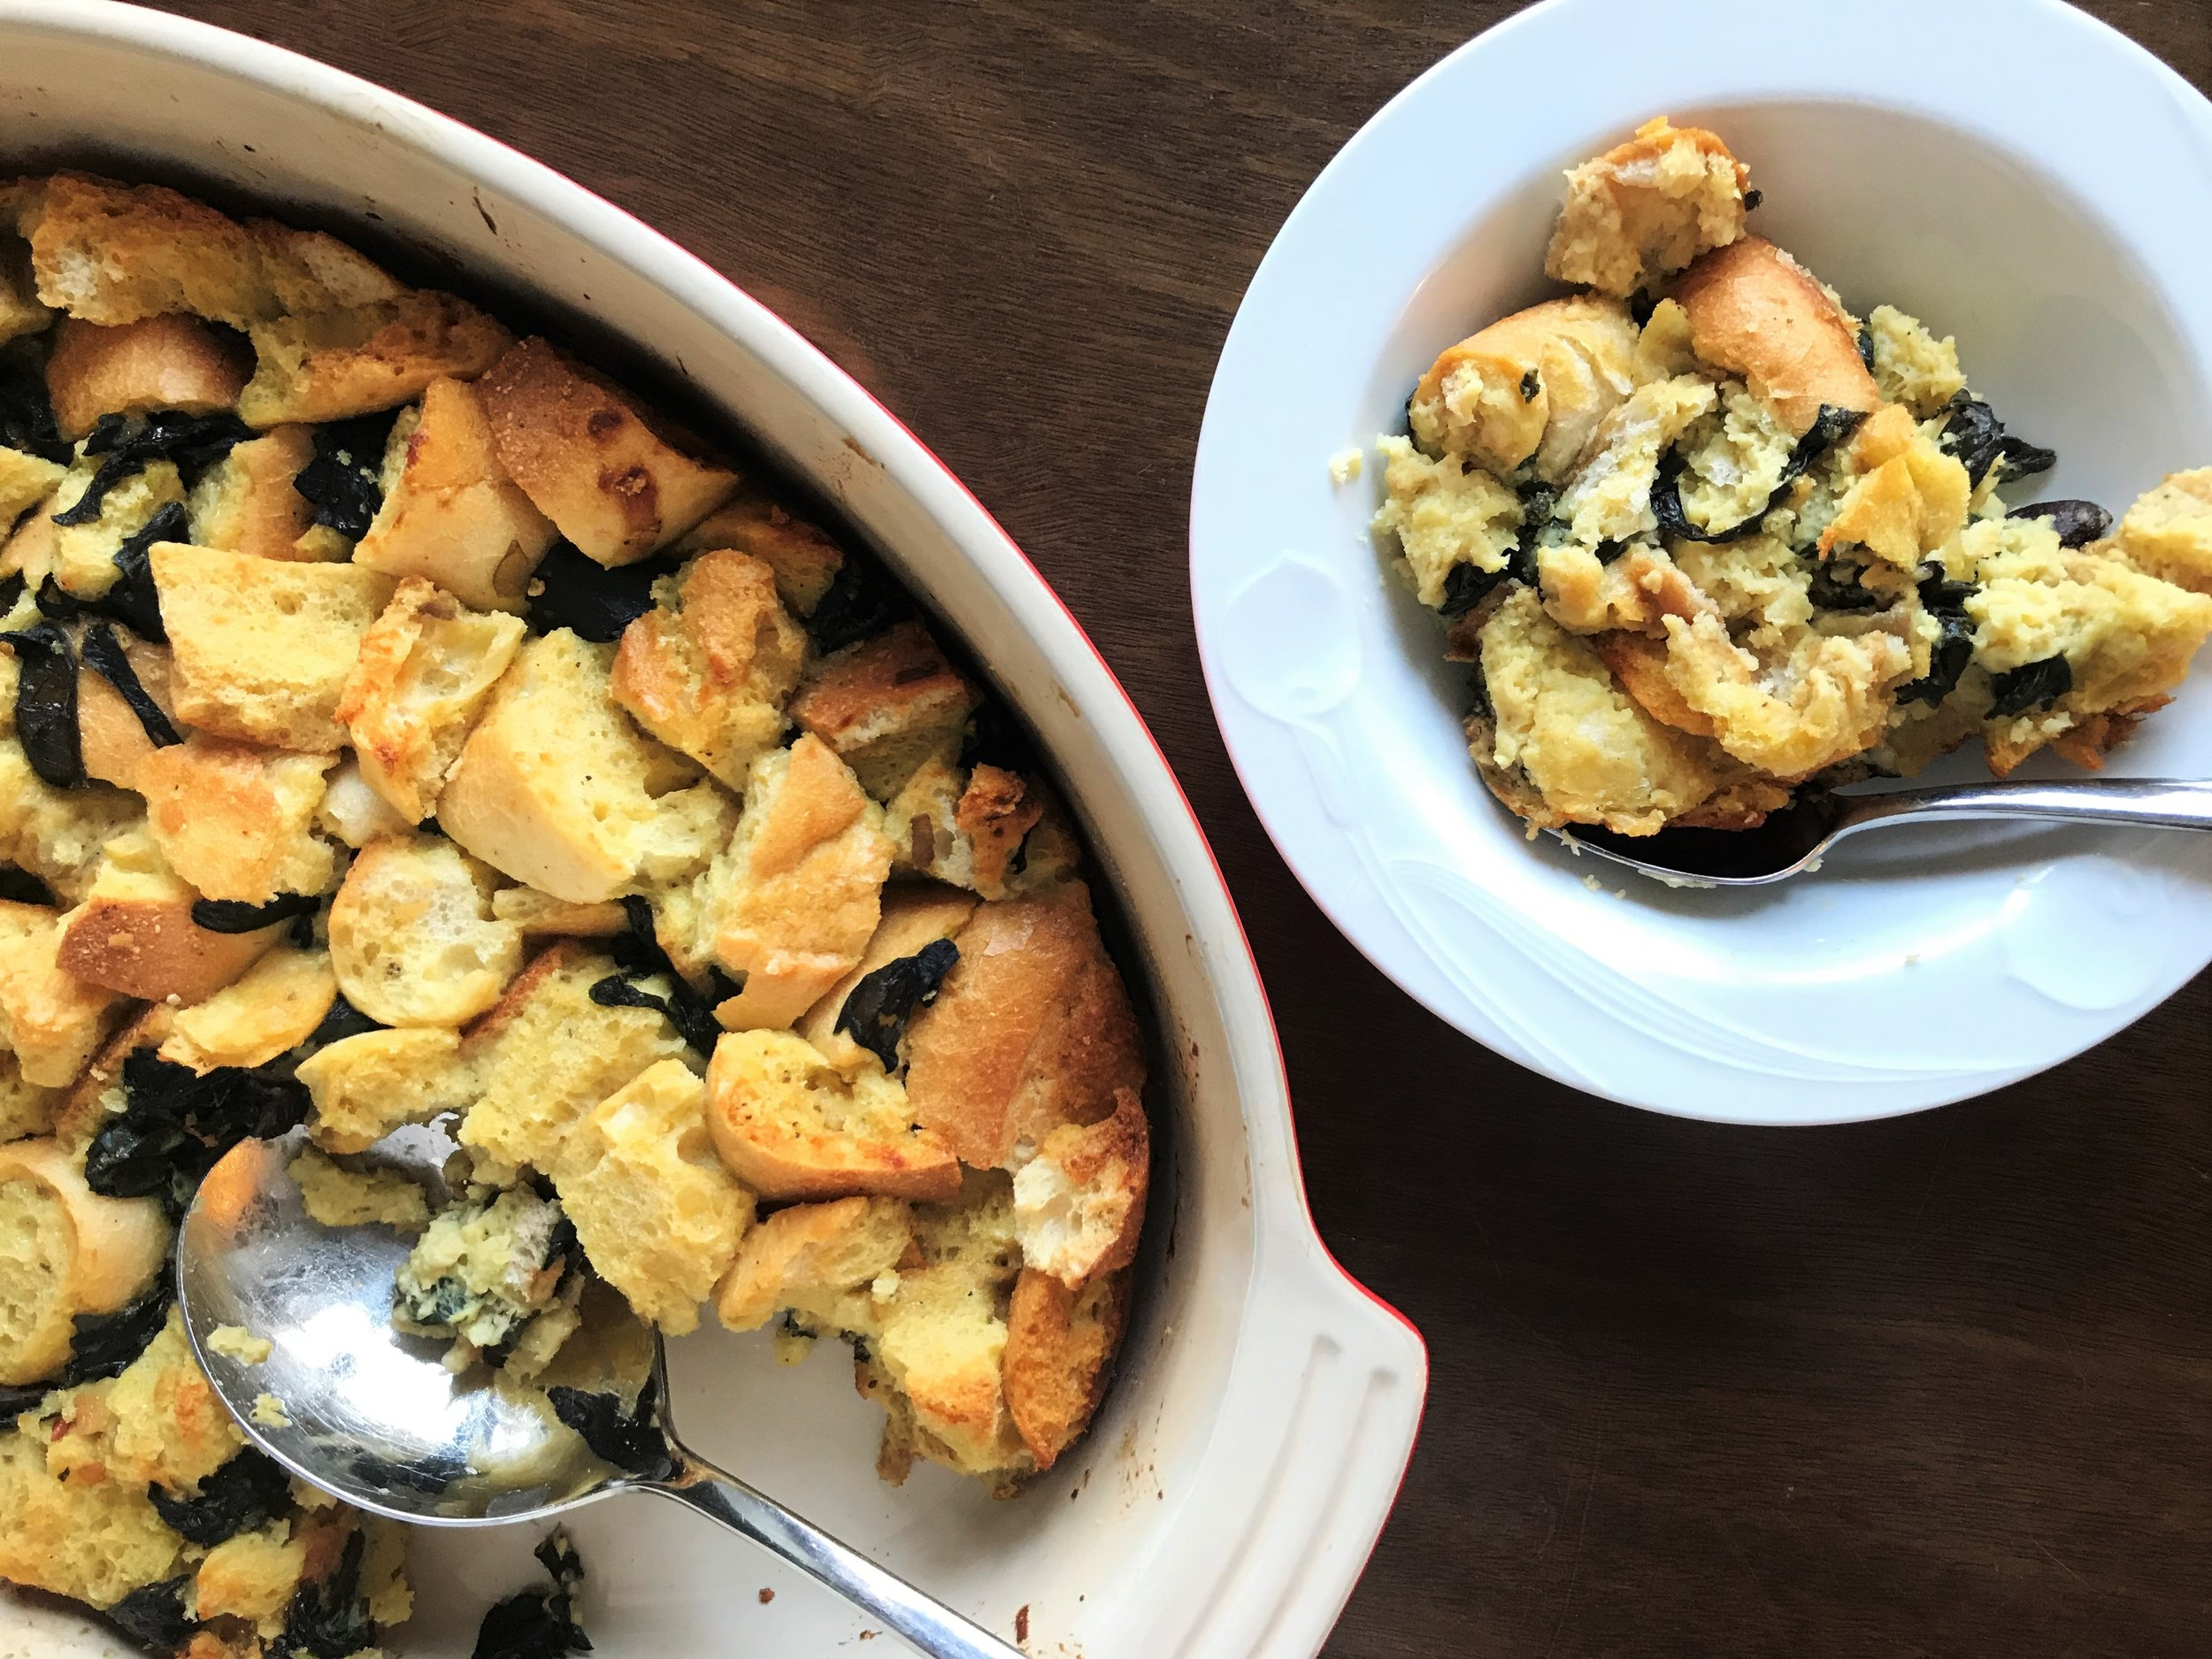 Savory Chard and Parmesan Bread Pudding made in the Adventure Kitchen.